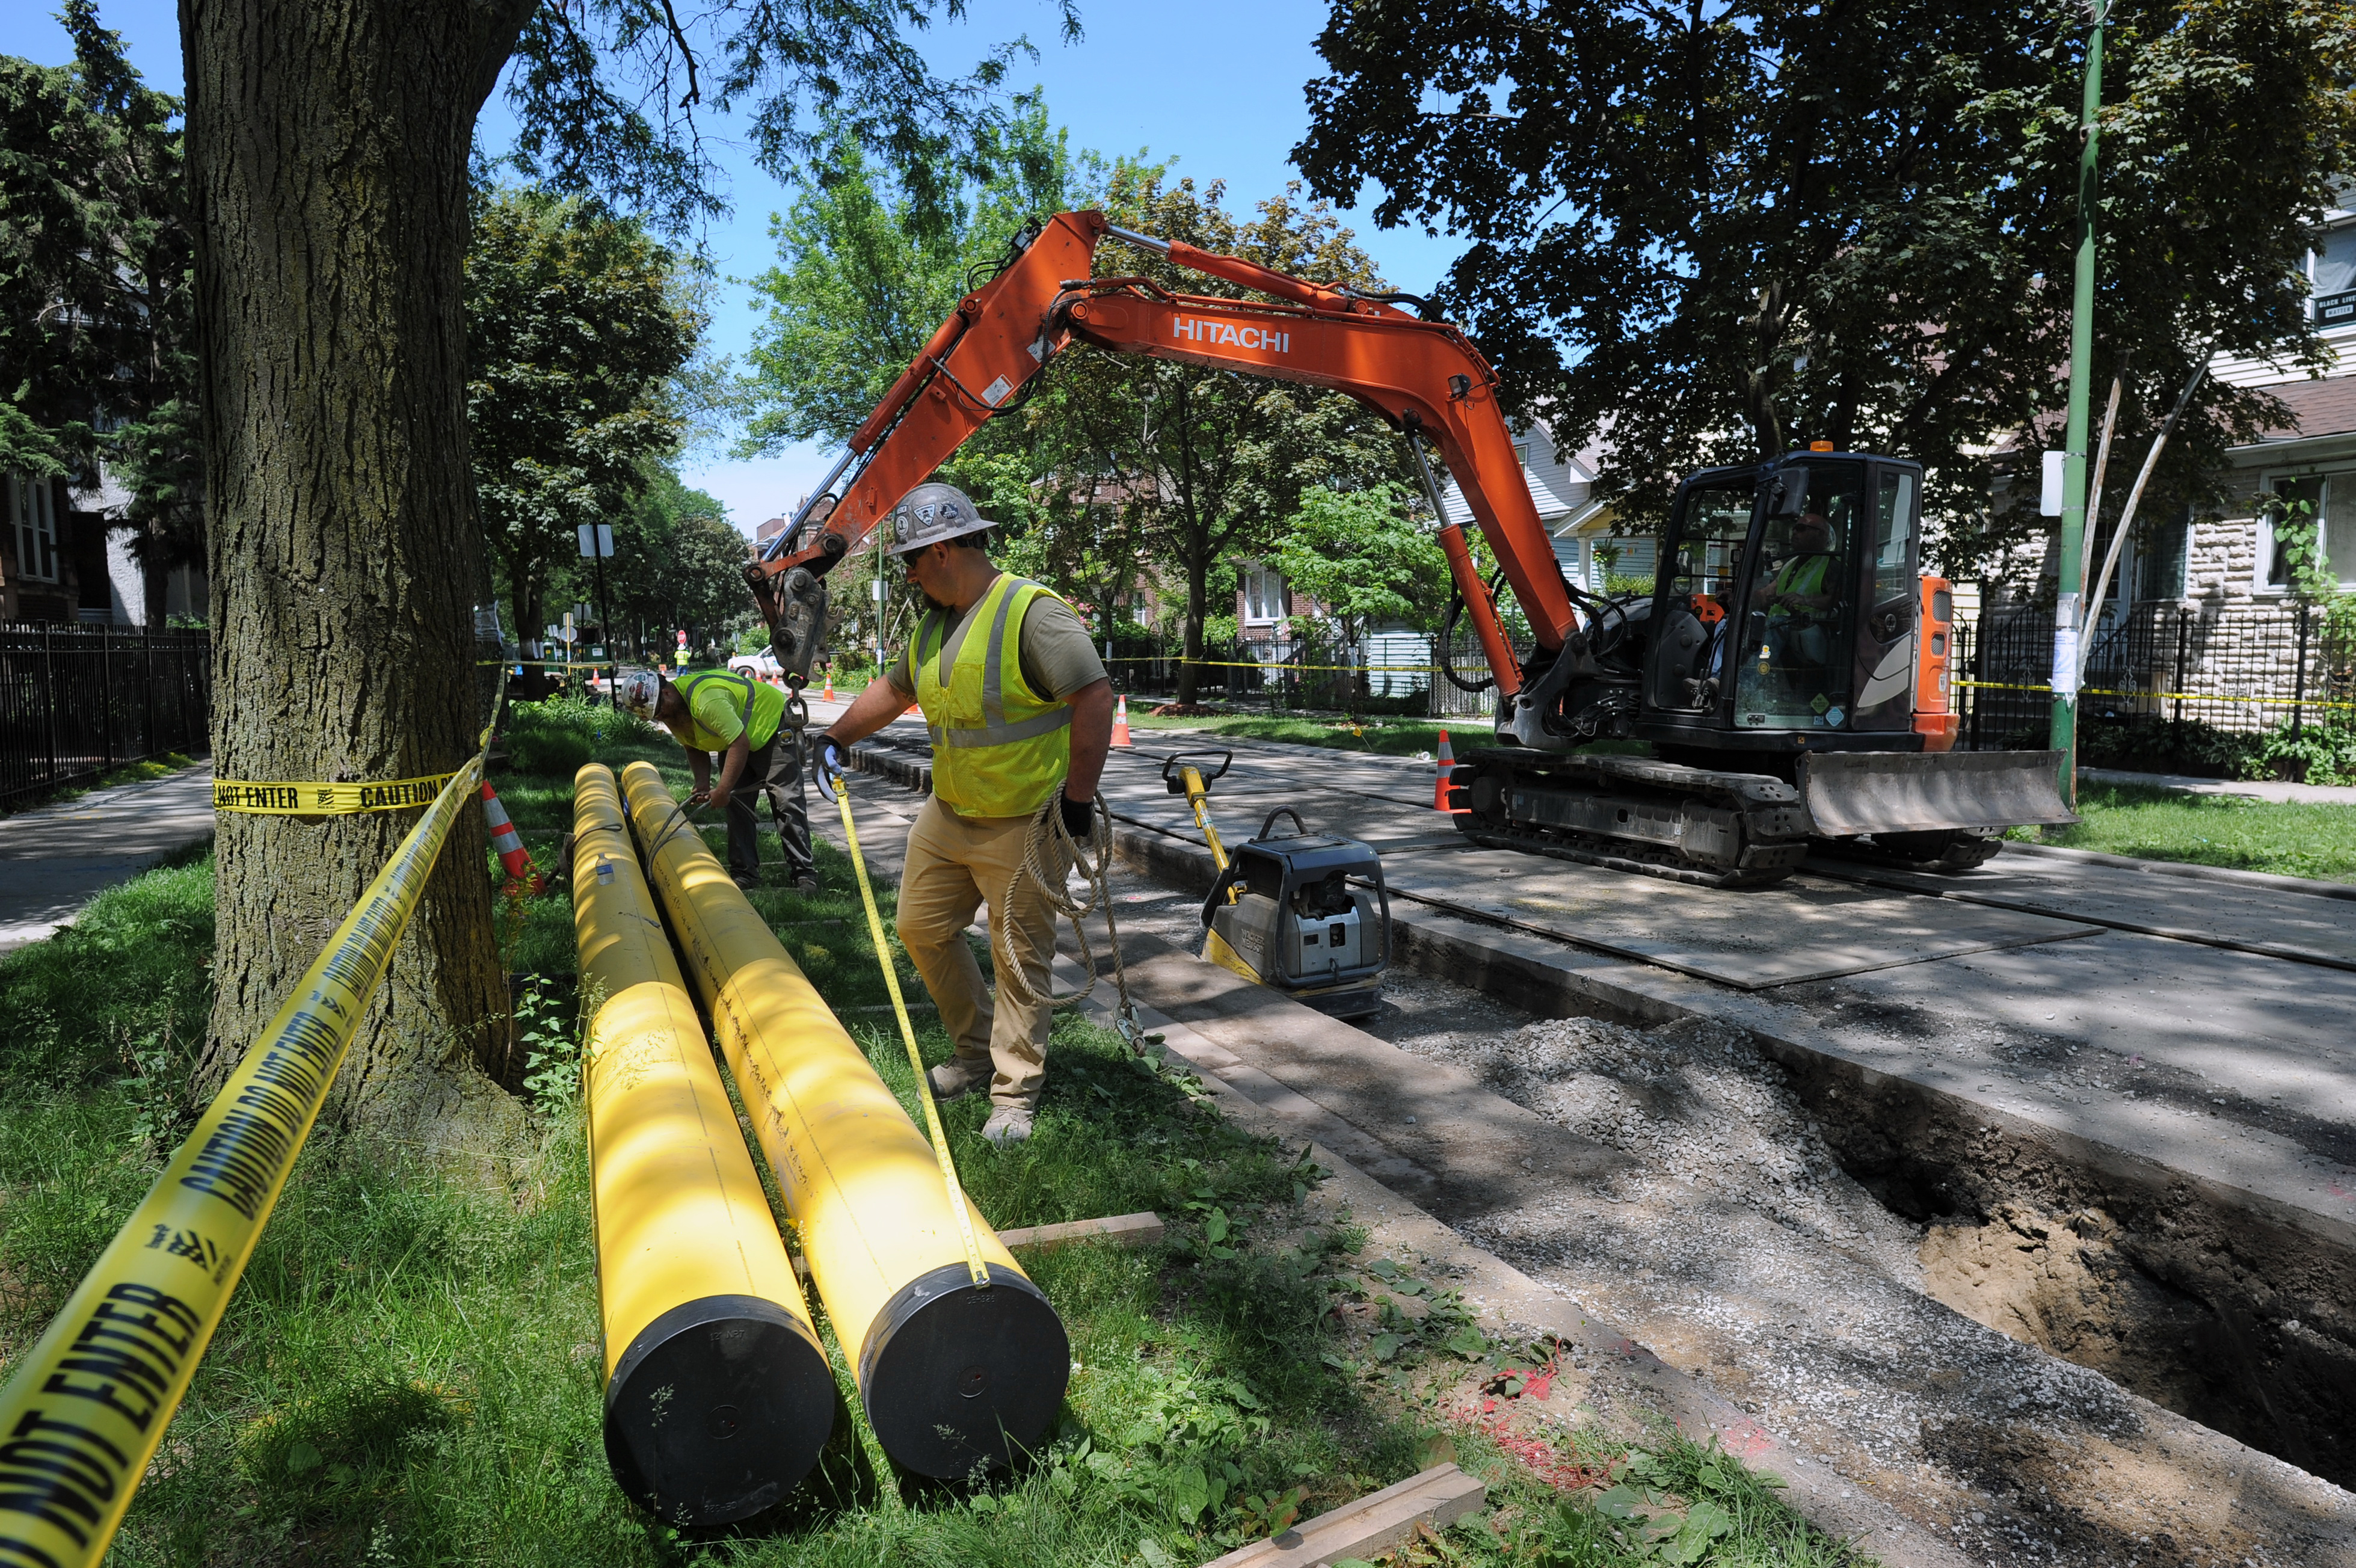 A Peoples Gas crew installing a new 12-inch main in Albany Park. Gas has been cheap in the United States for more than a decade, a result of the vast supply producers unlocked through fracking in shale formations. Low gas prices have contributed to low electricity prices. But gas prices have soared in the past month because of disruptions to gas infrastructure from Hurricane Ida and a hot summer that boosted gas demand and economic growth, as the country emerges from the coronavirus pandemic.